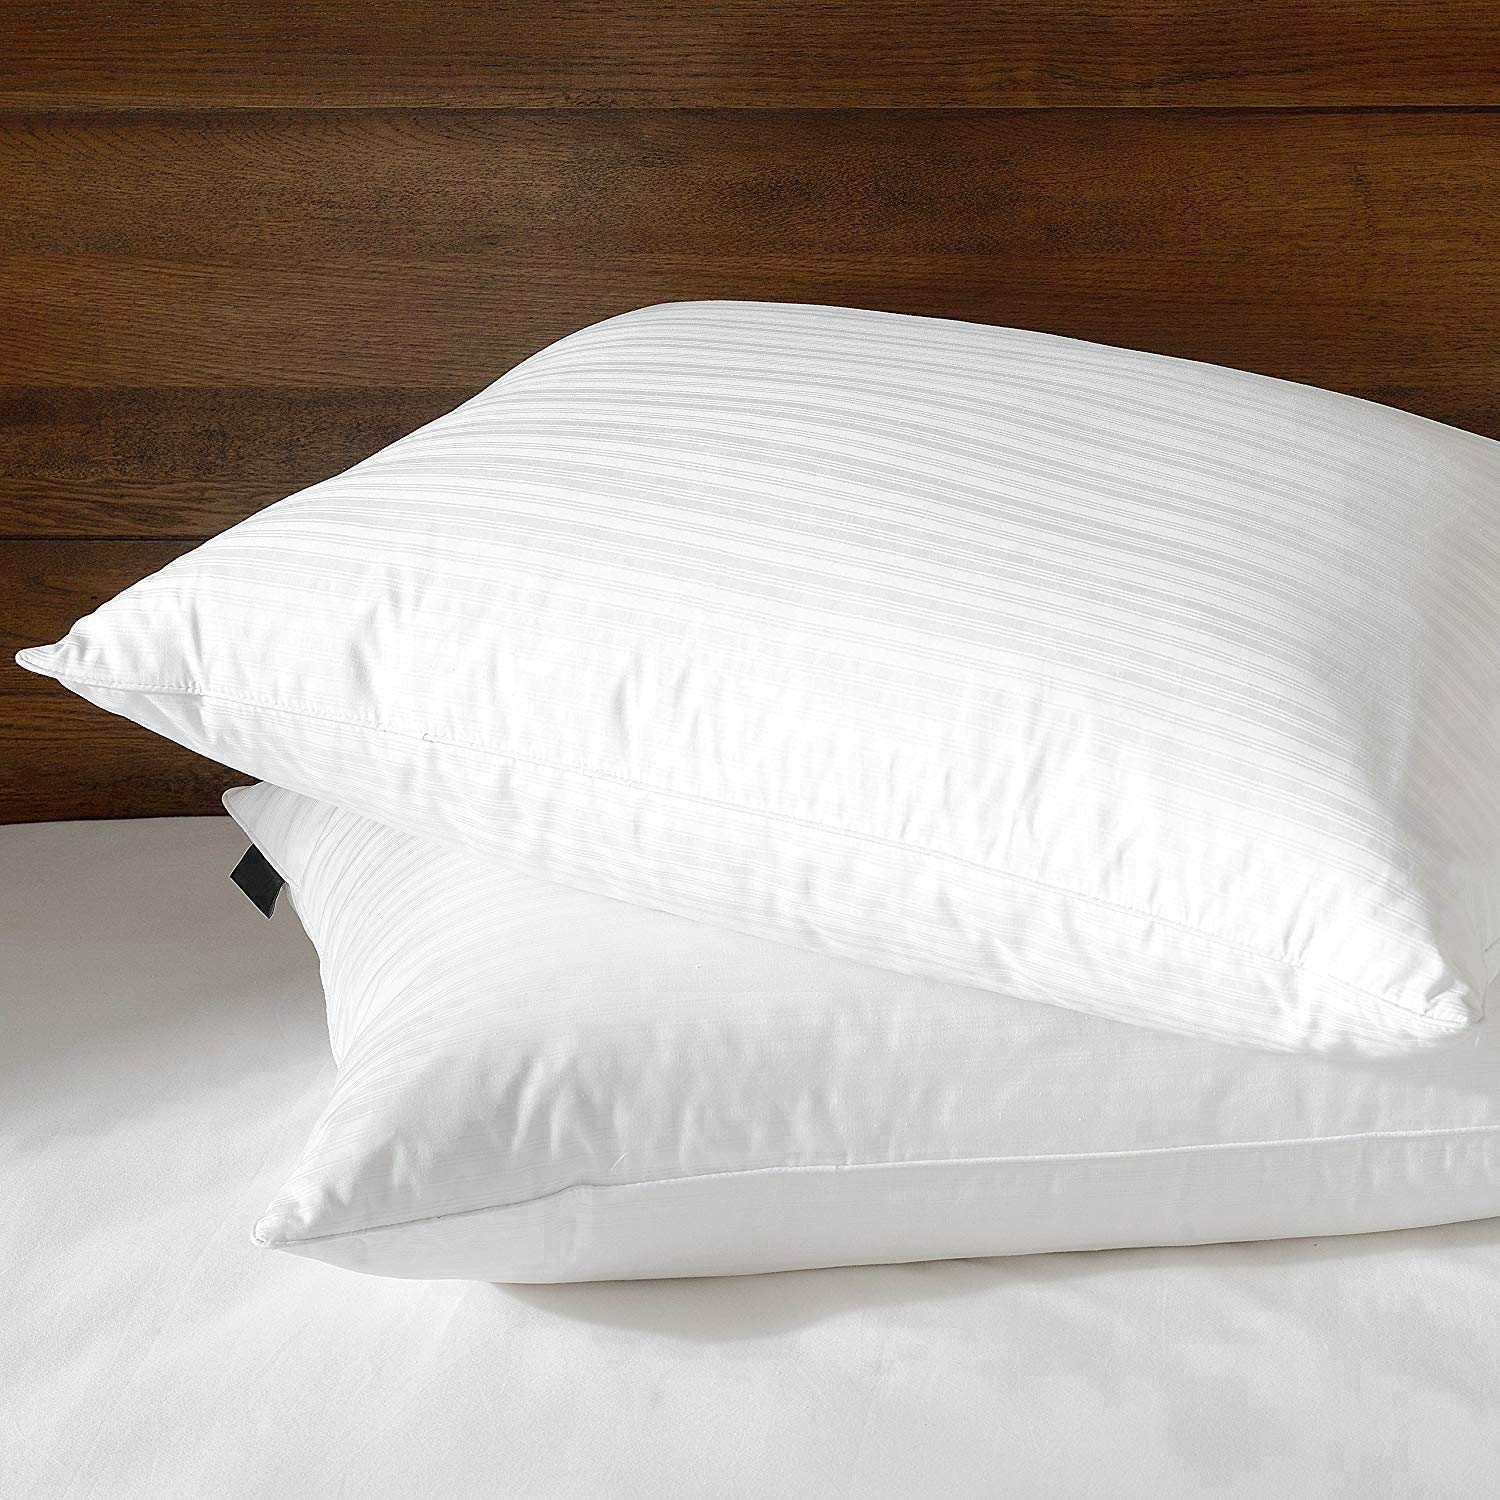 downluxe Feather Pillows